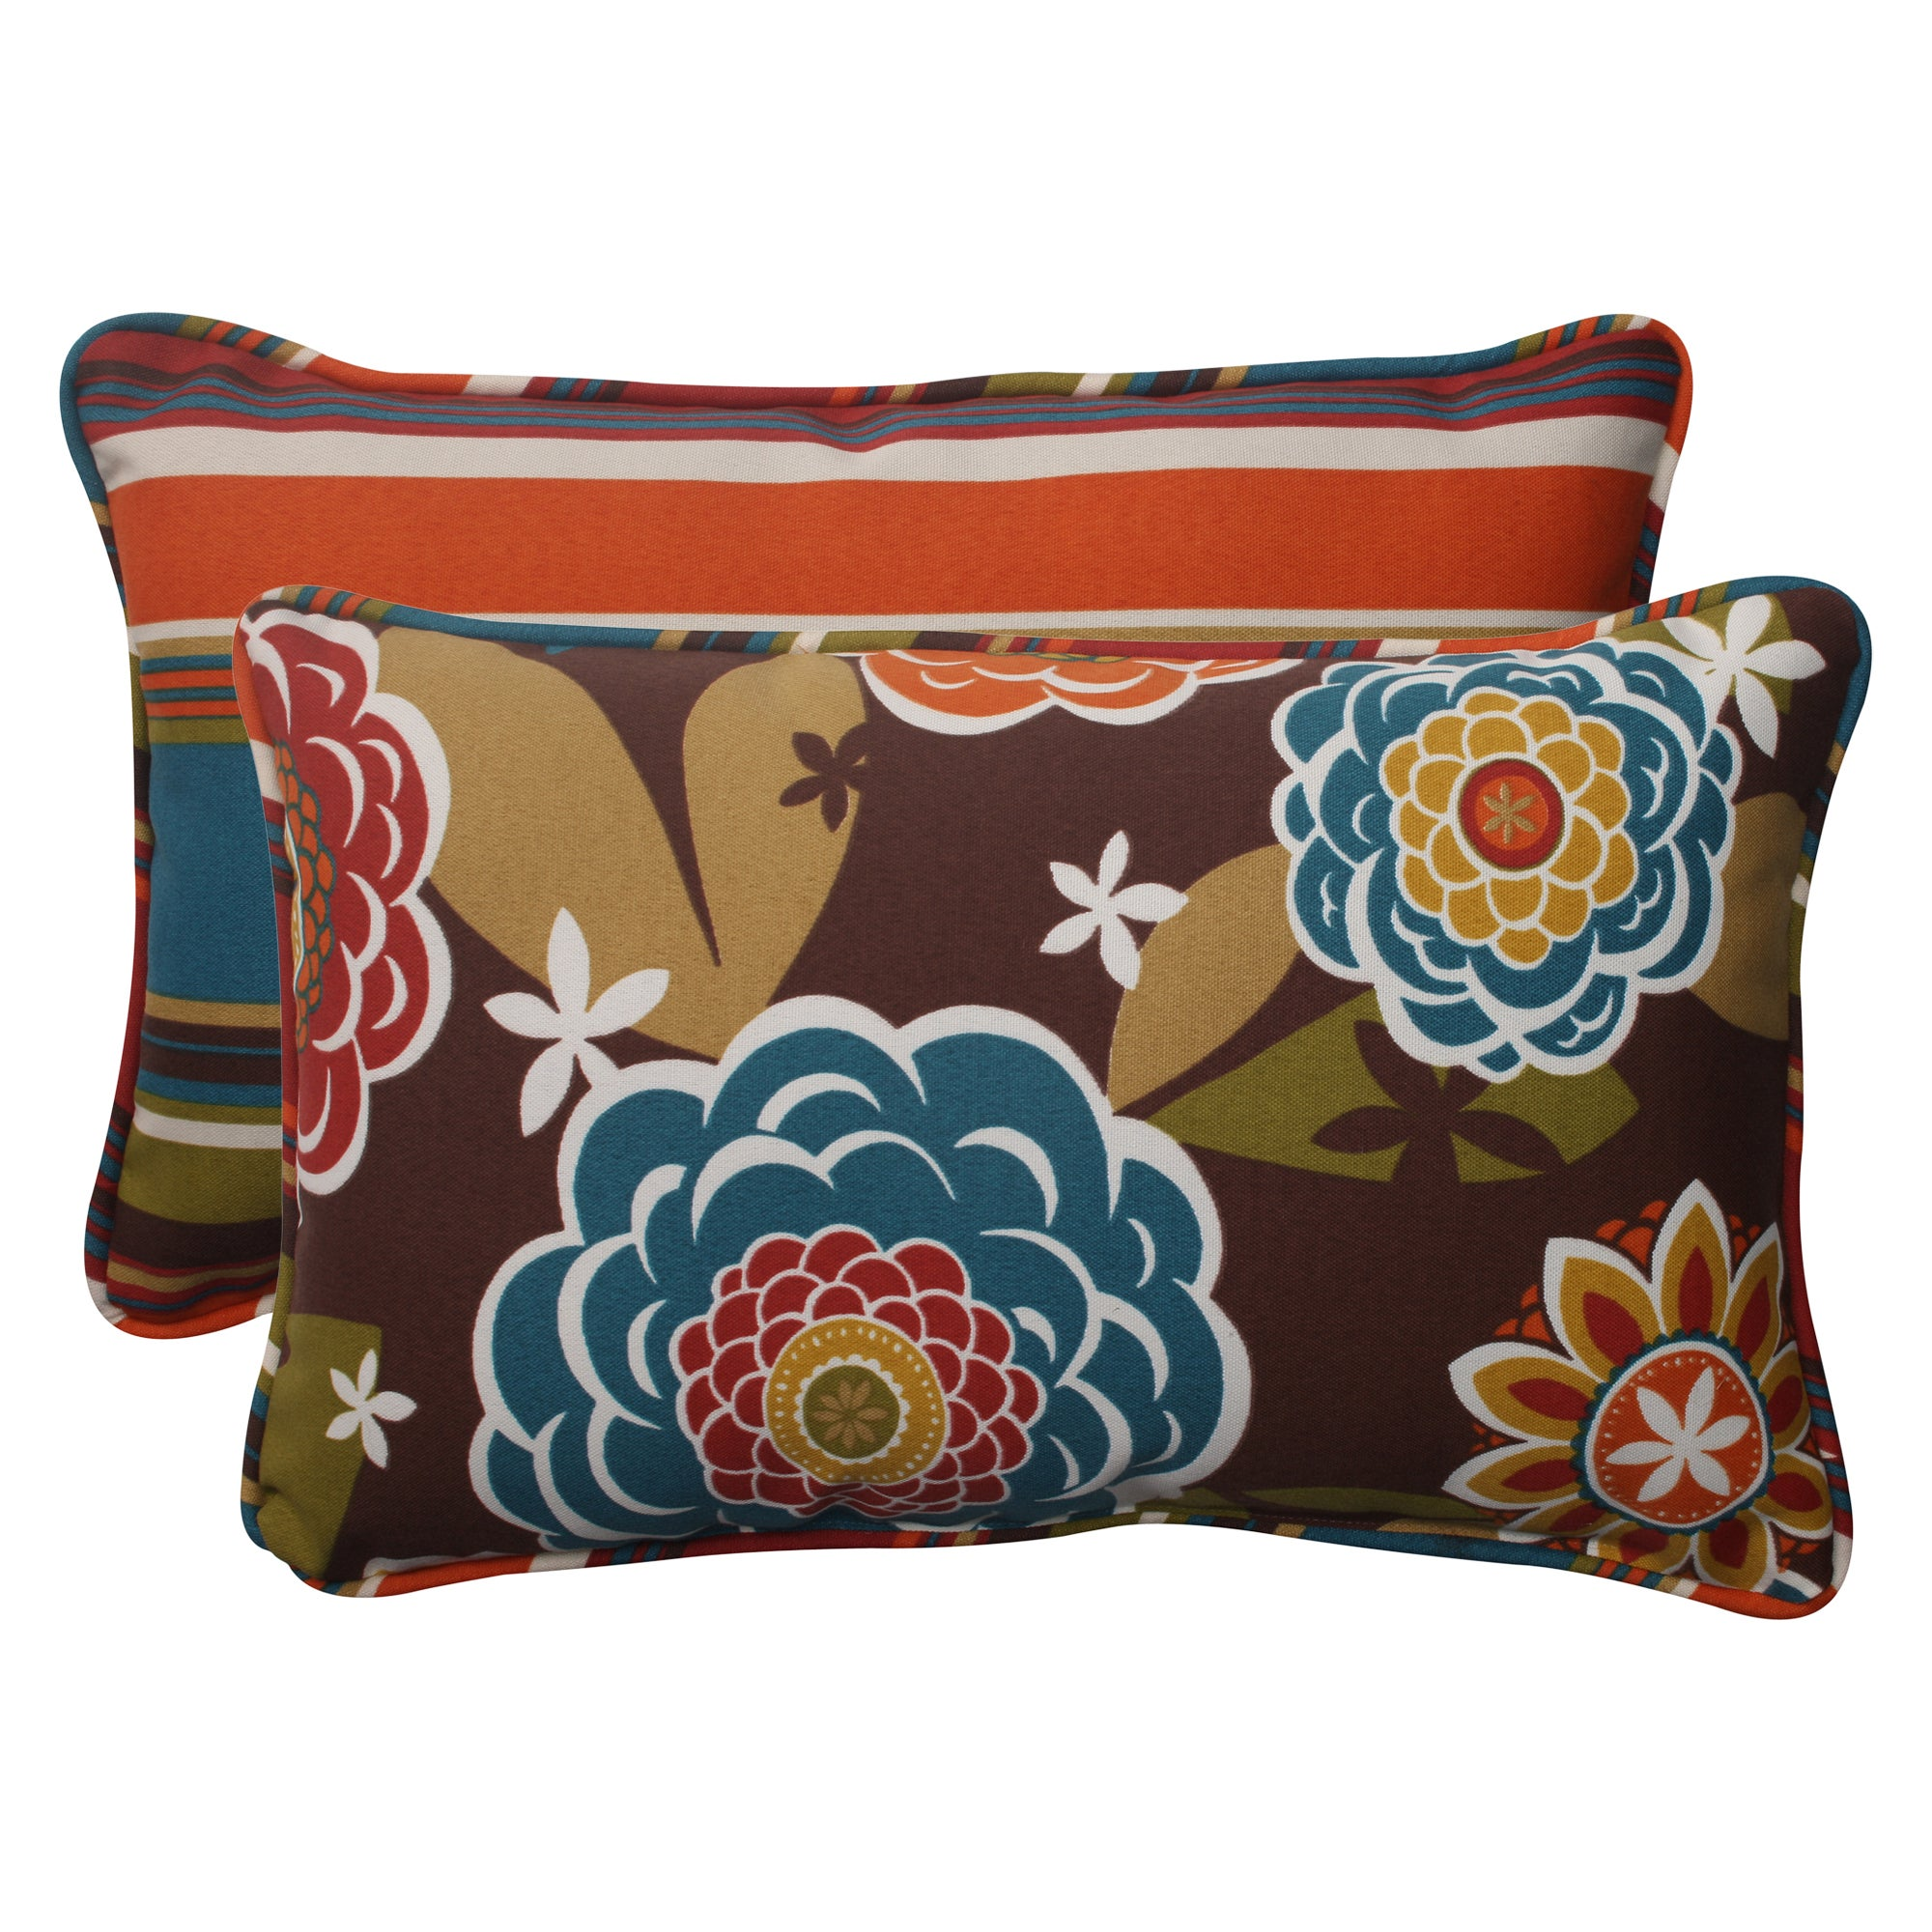 Shop Pillow Perfect Outdoor Throw Pillows Set Of 2 Free Shipping